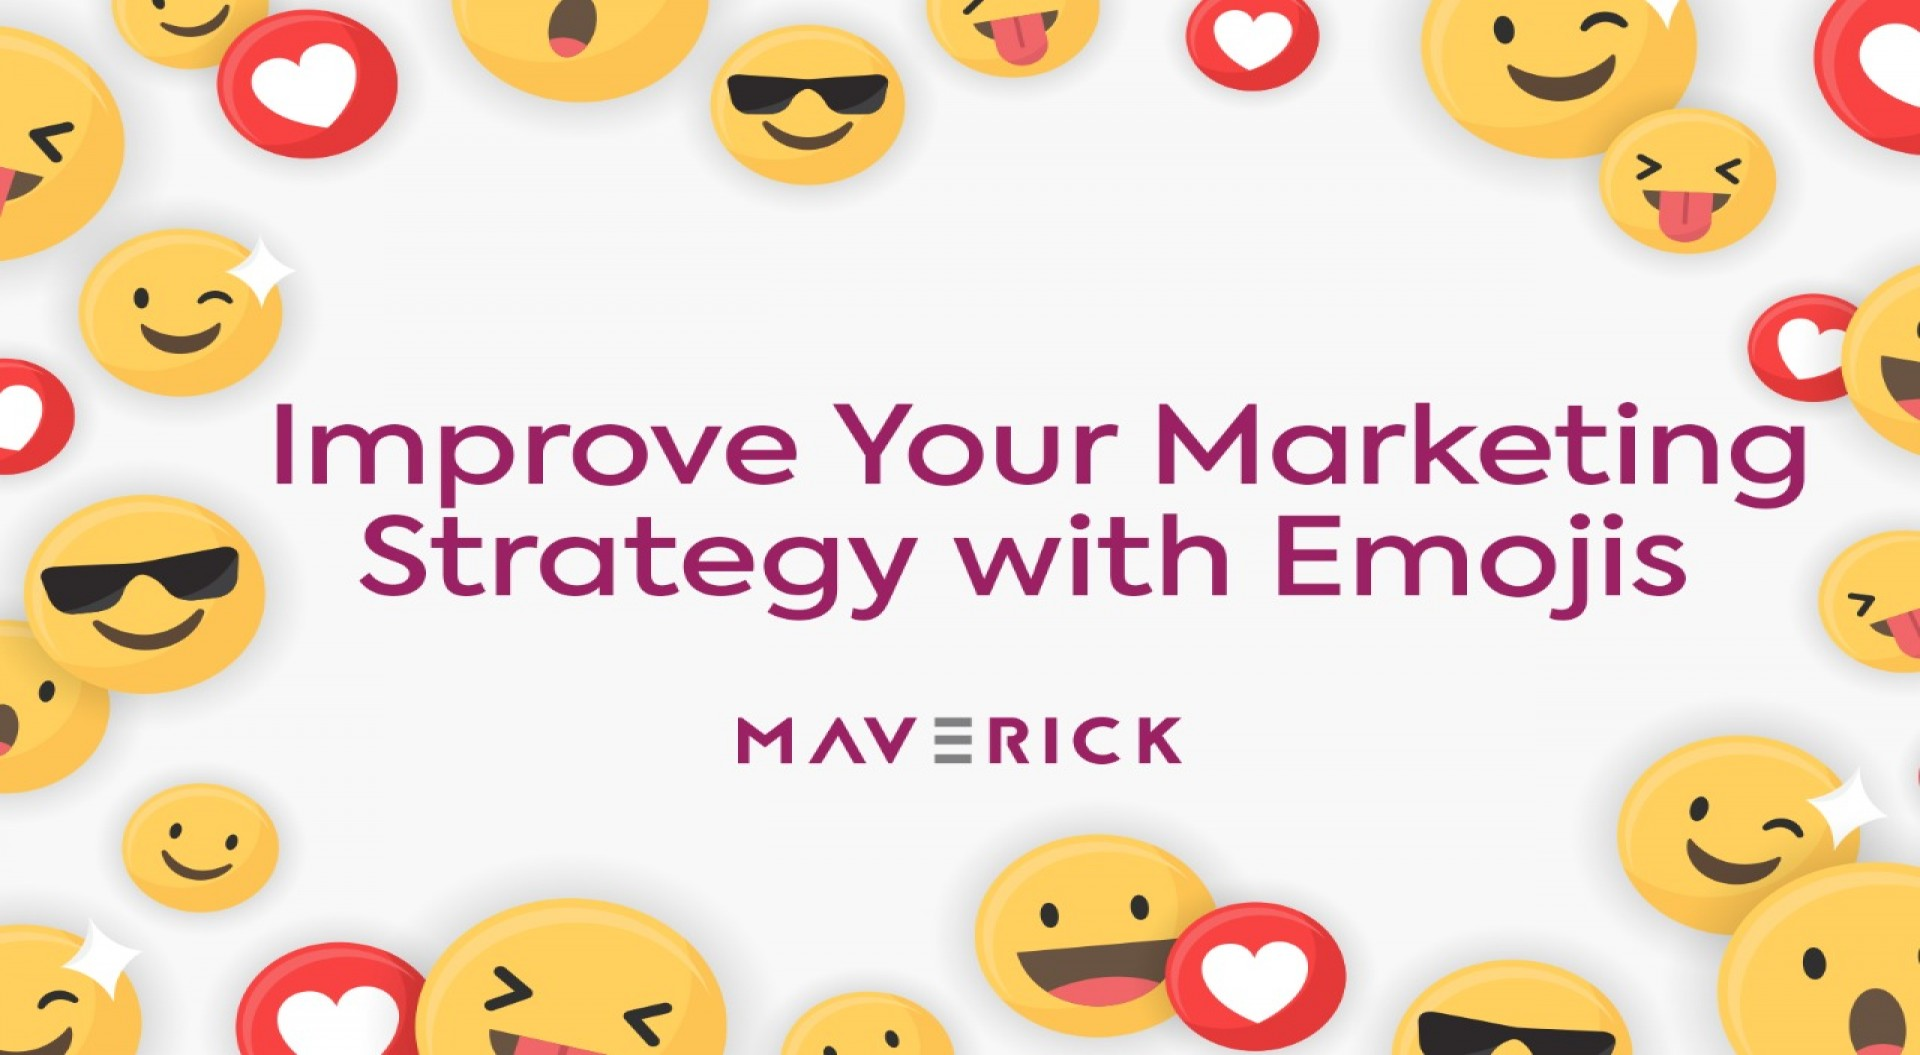 Marketing Strategy with Emojis